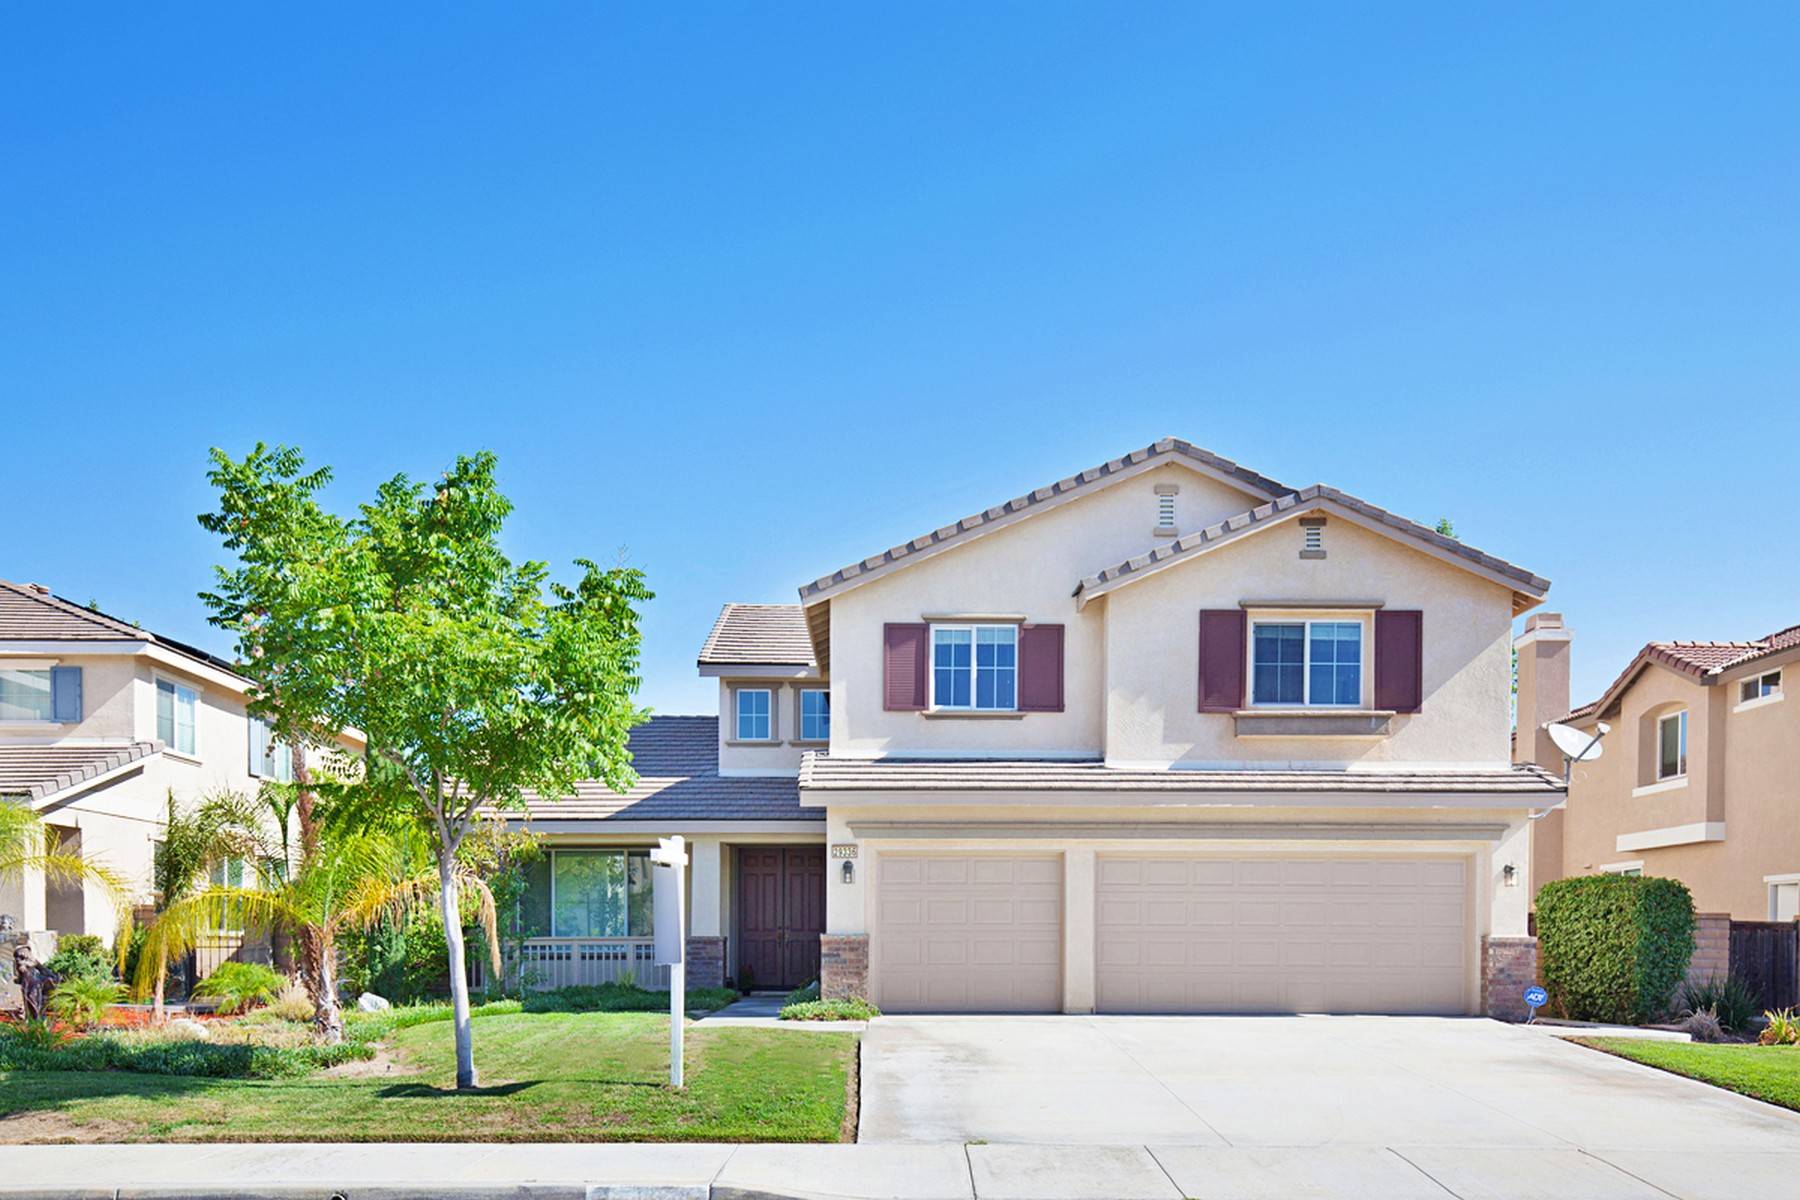 Single Family Home for Sale at 29336 Ariel Street Murrieta, California 92563 United States